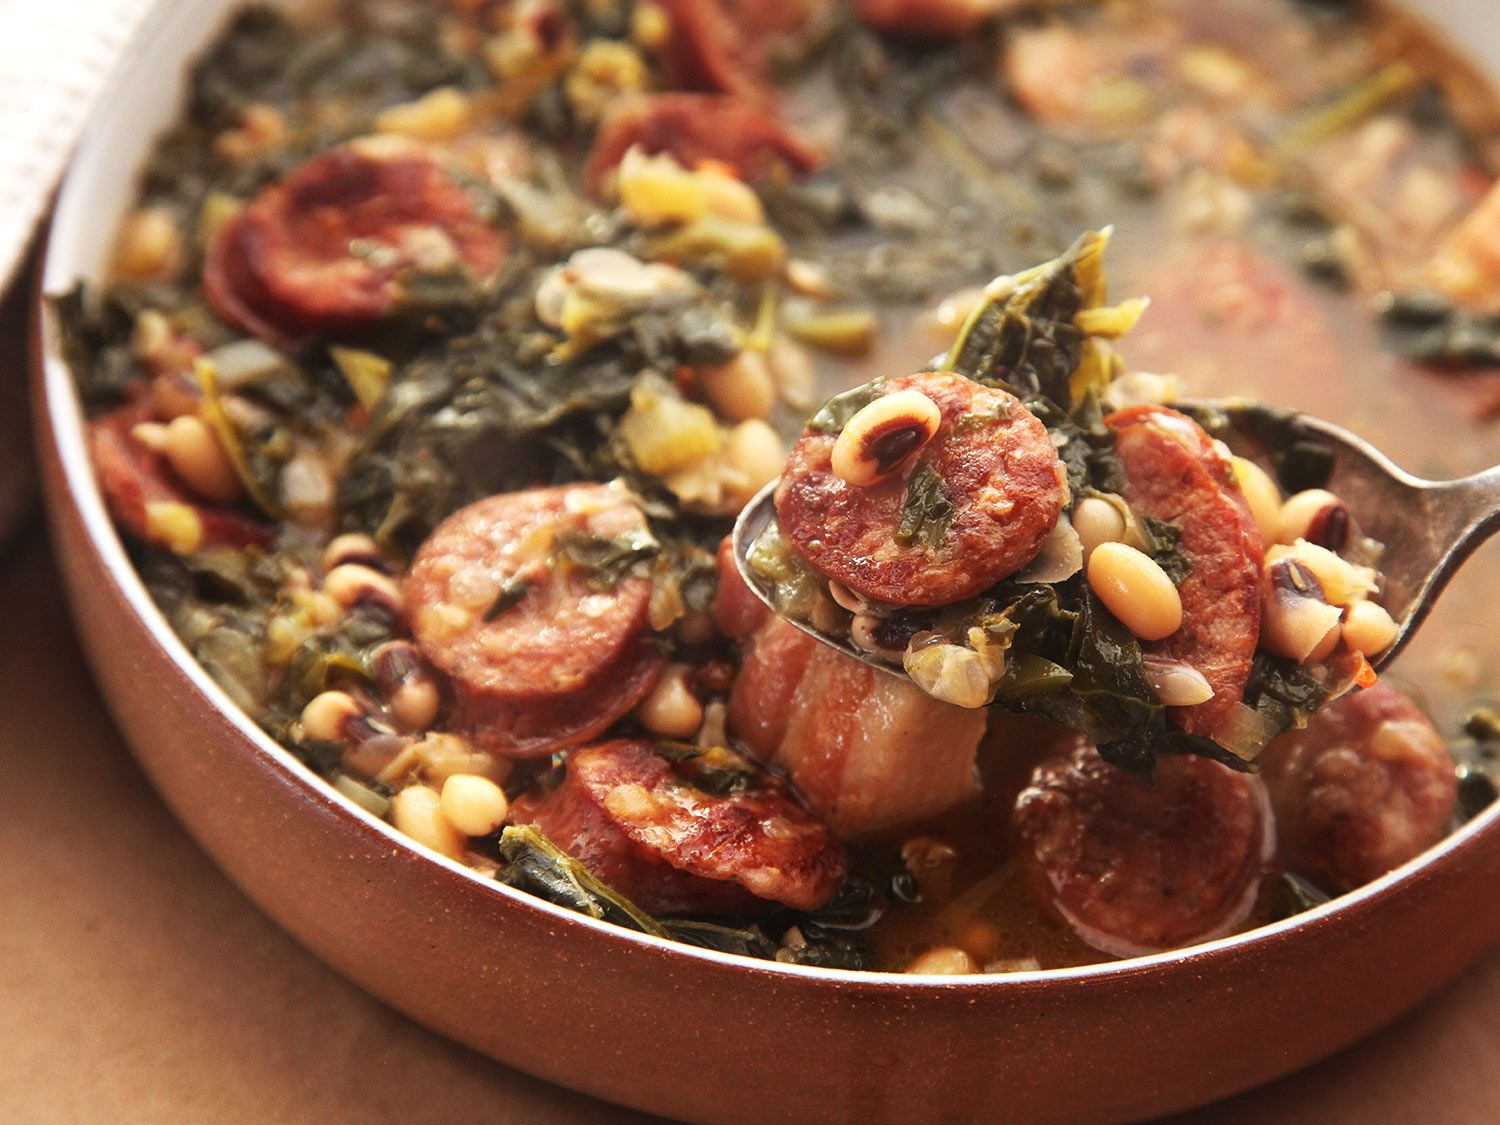 Serious Eats: Black Eyed Peas With Kale & Andouille for a Simple One-Pot Dinner